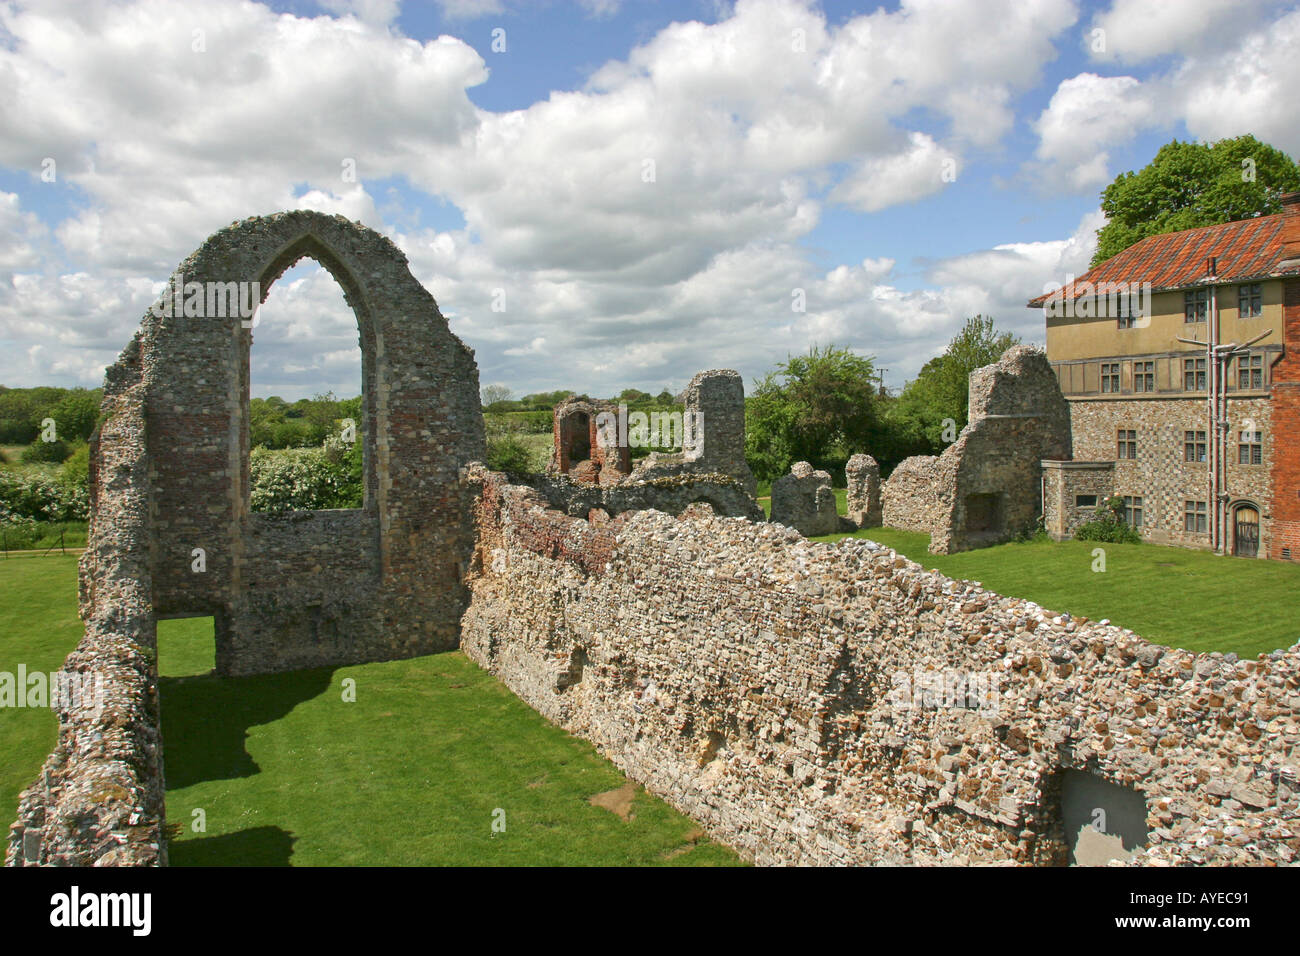 Ruins of Leiston Abbey Leiston Suffolk East Anglia UK - Stock Image